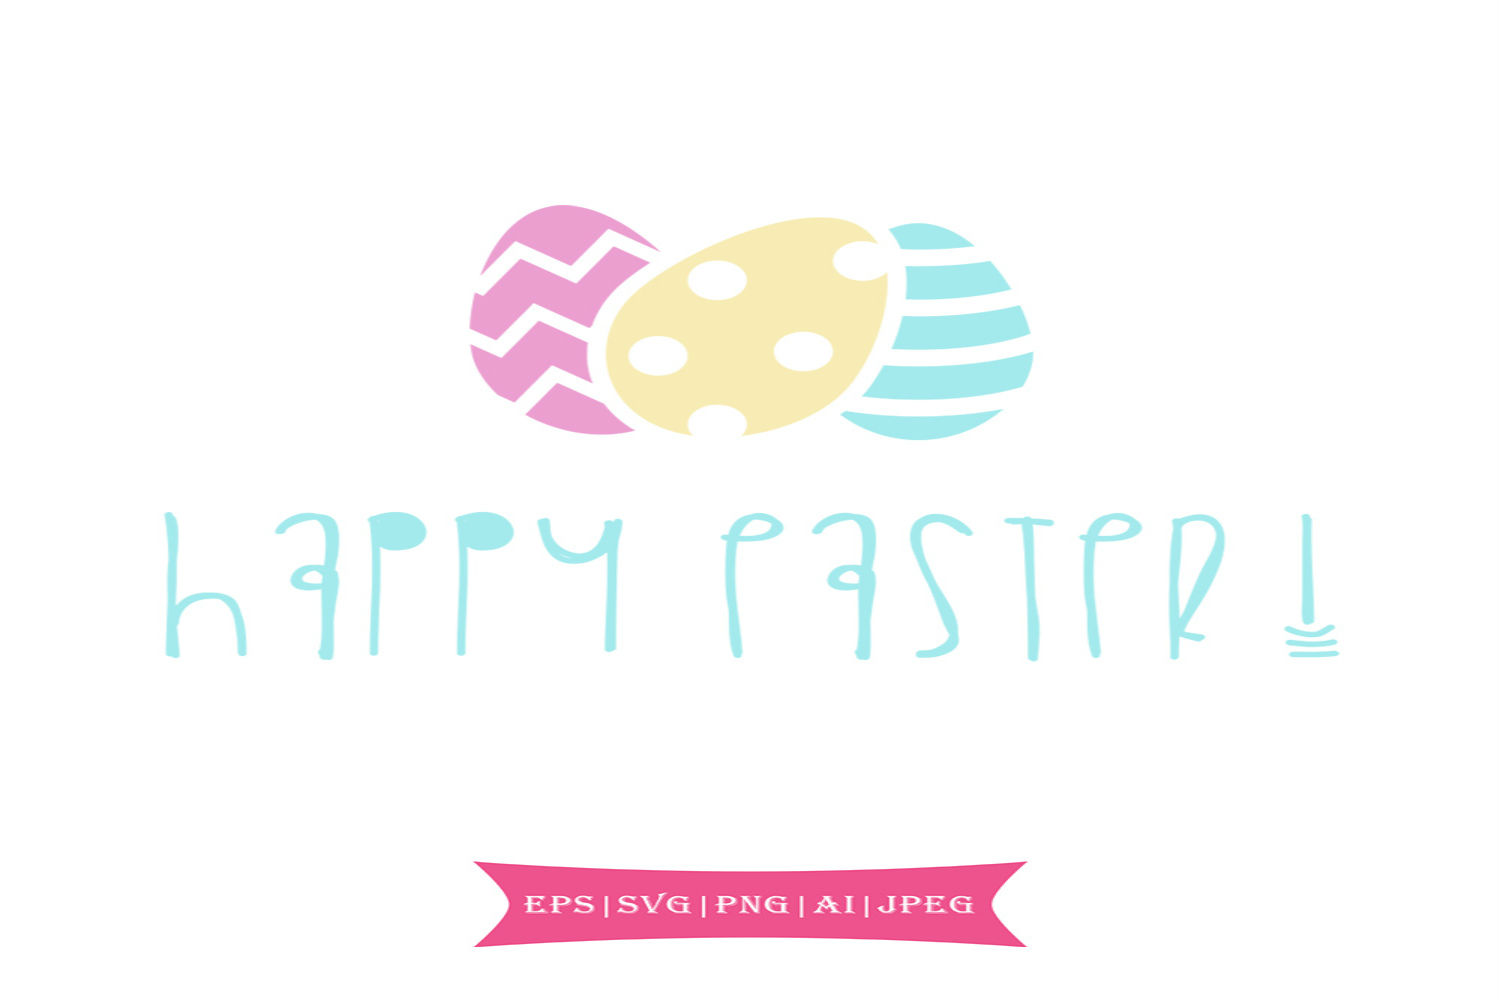 Download Free Happy Easter Graphic By Summerssvg Creative Fabrica for Cricut Explore, Silhouette and other cutting machines.